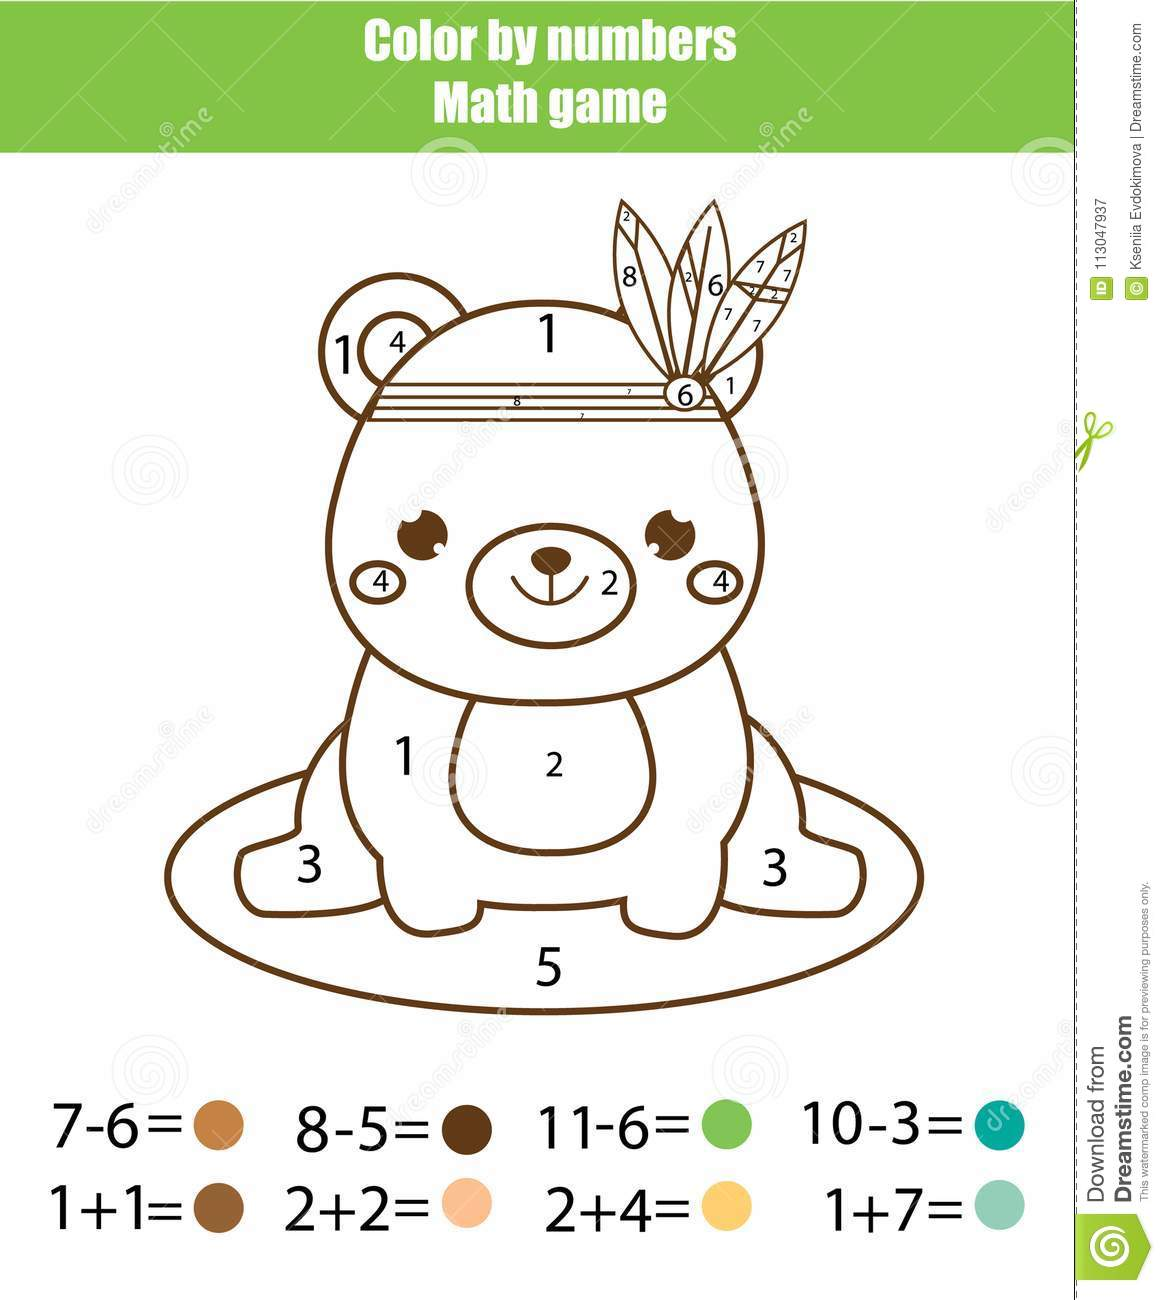 Children Educational Game Mathematics Actvity Color By Numbers Printable Worksheet Coloring